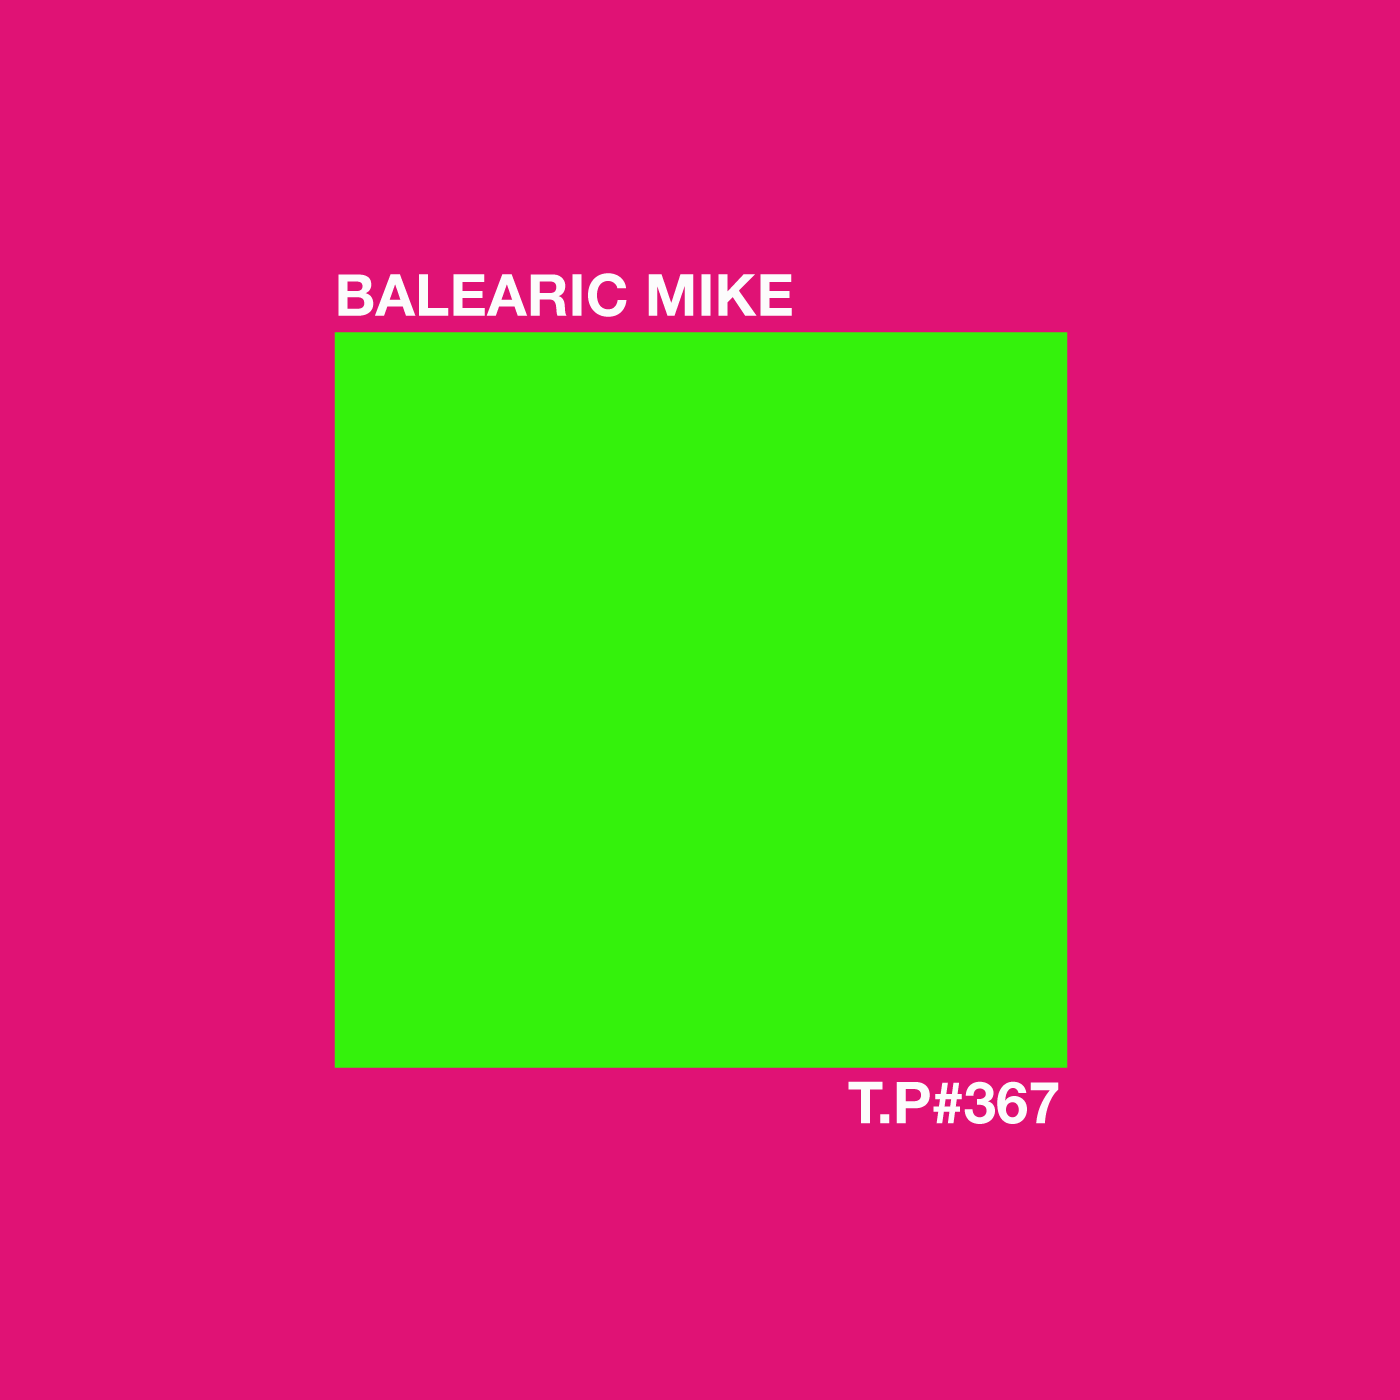 Balearic Mike, DJ, Down To The Sea & Back, Album, Balearic, Mix, Test Pressing